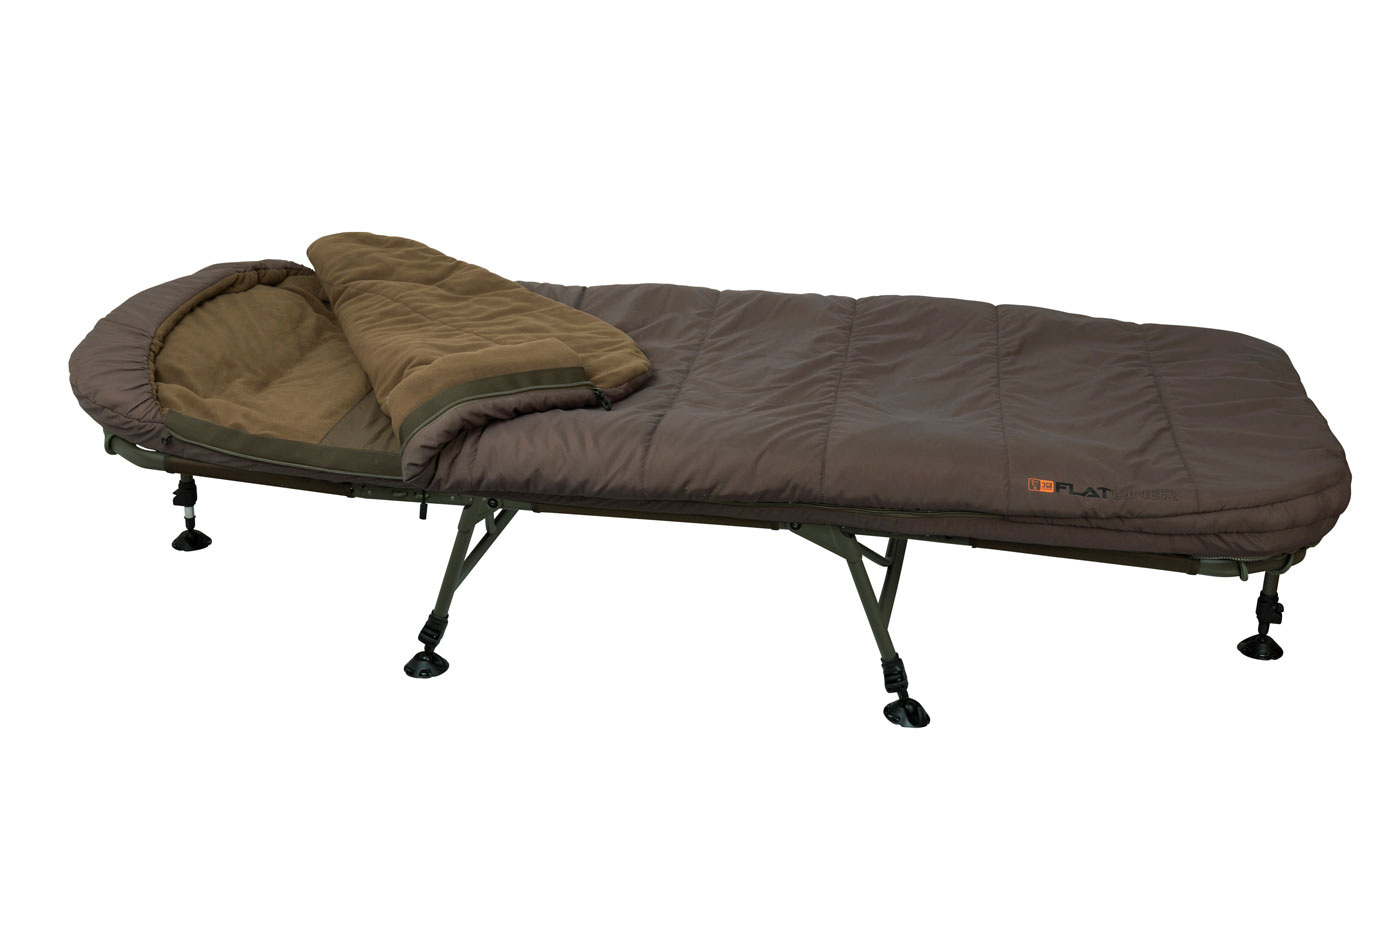 FLATLINER 6 LEG 3 SEASON SLEEP SYSTEM